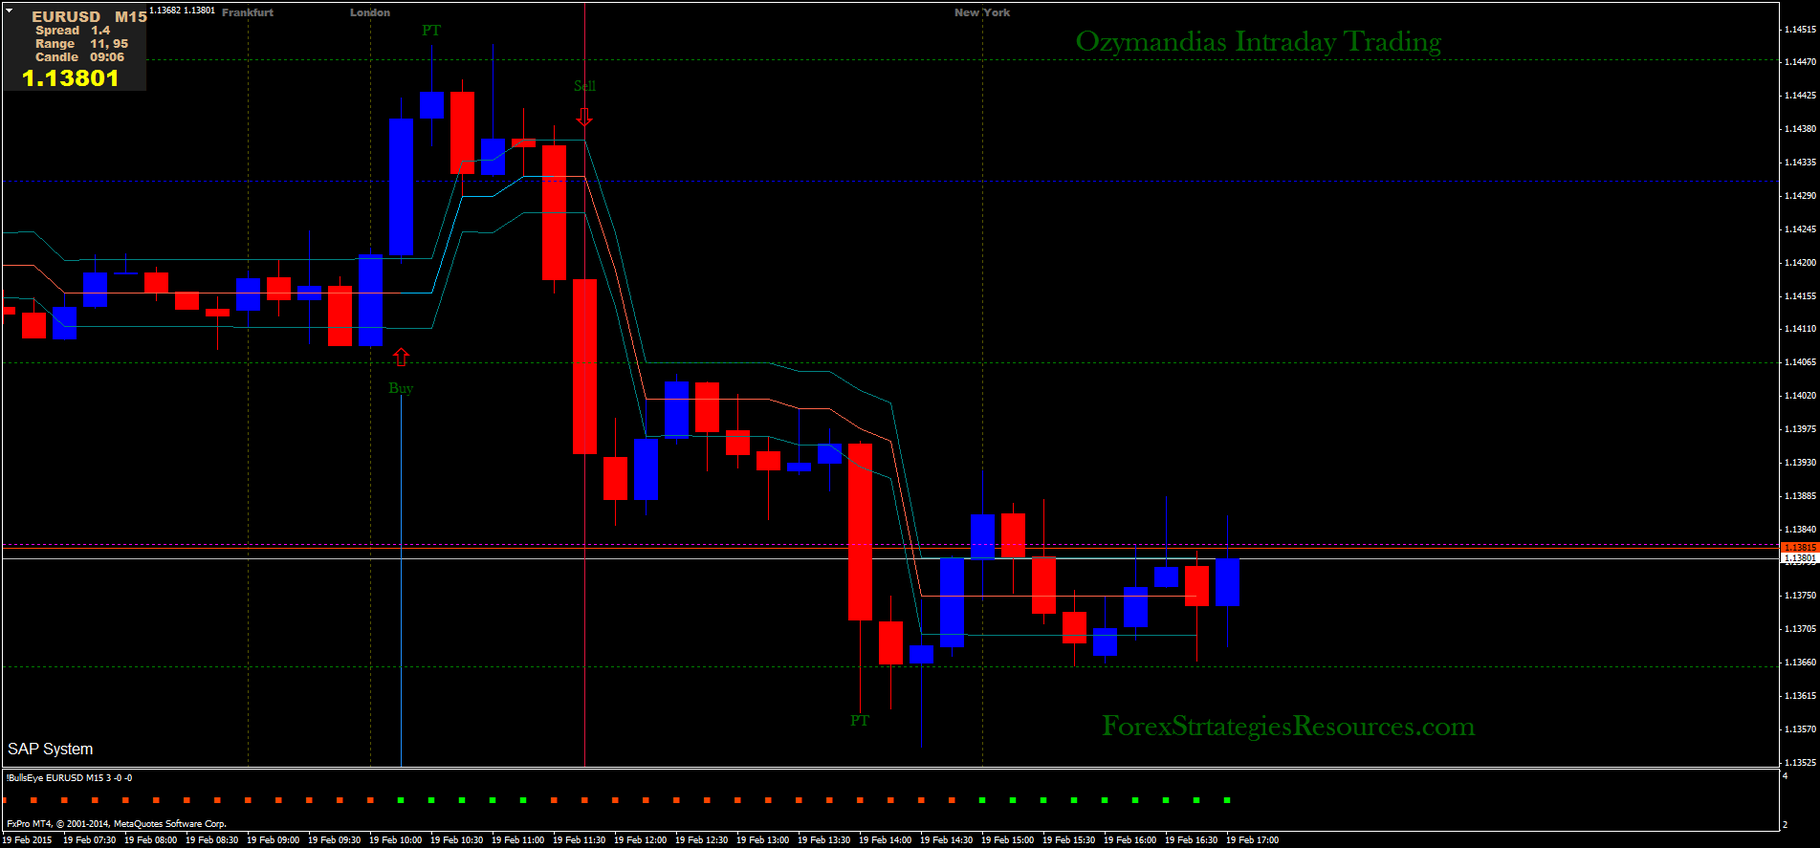 Ozymandias Intraday Trading - Forex Strategies - Forex Resources - Forex Trading-free forex ...